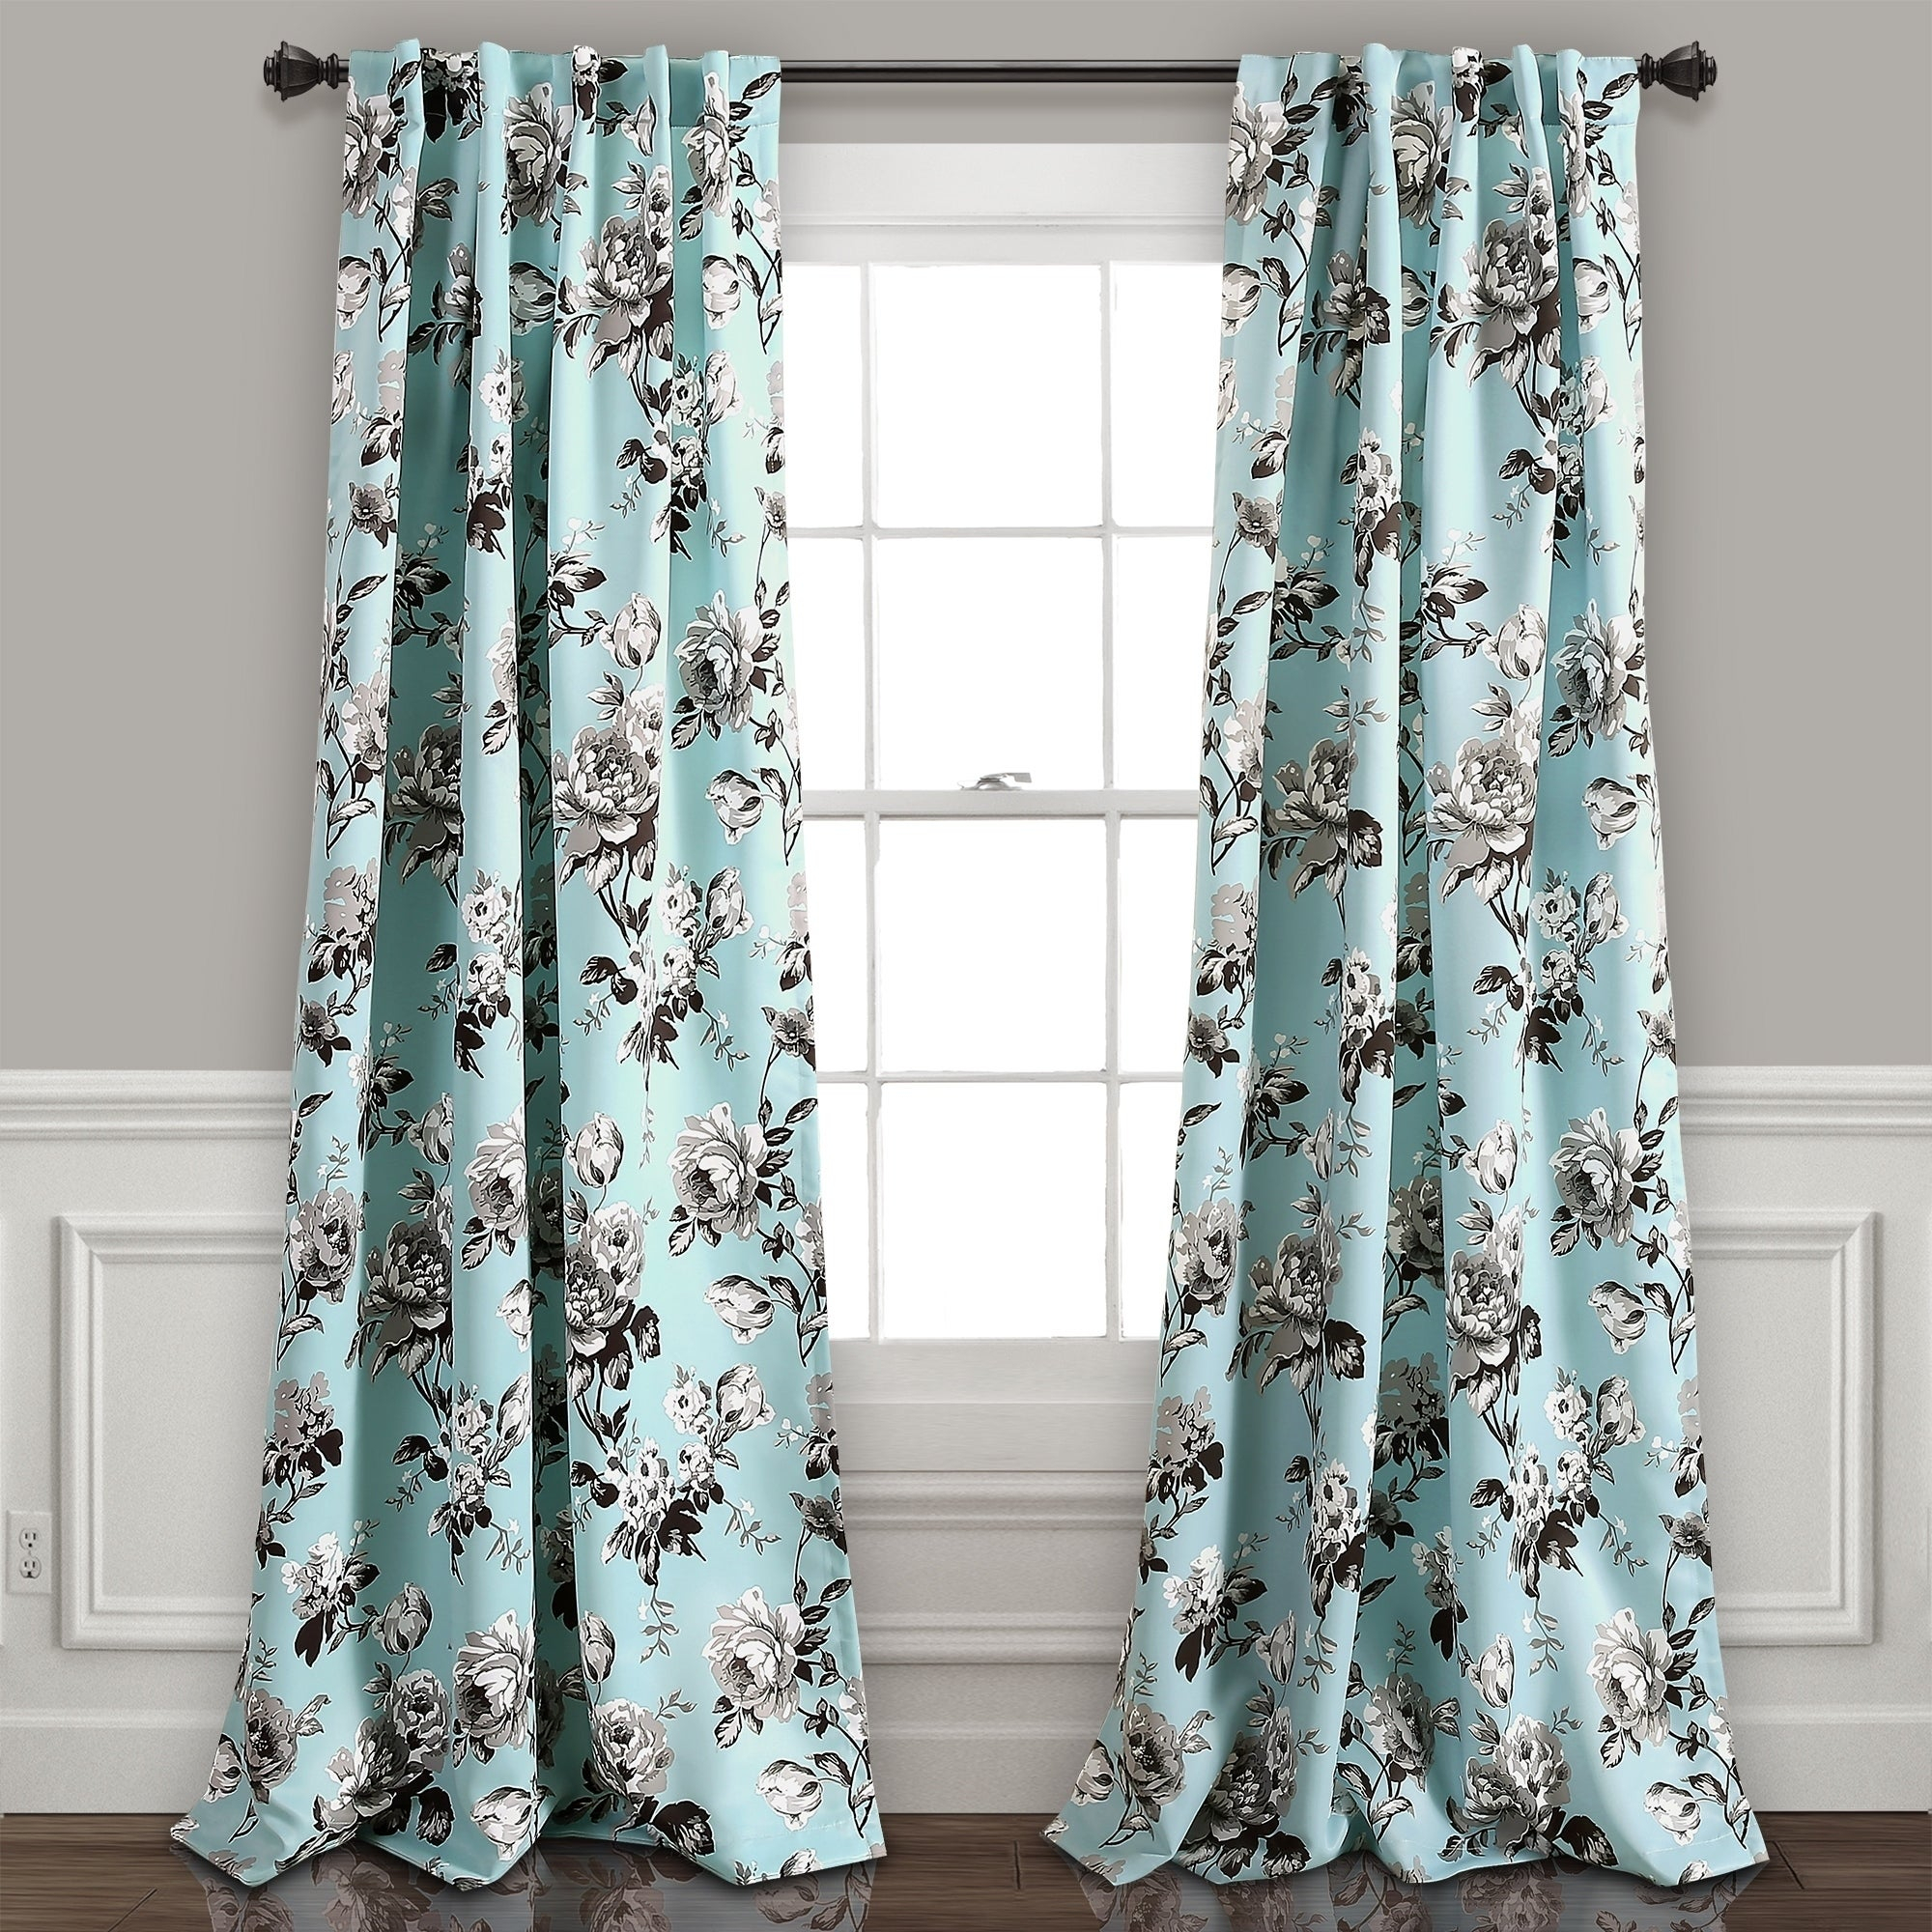 Lush Decor Tania Floral Room Darkening Window Curtain Panel Pair for Floral Pattern Room Darkening Window Curtain Panel Pairs (Image 11 of 20)